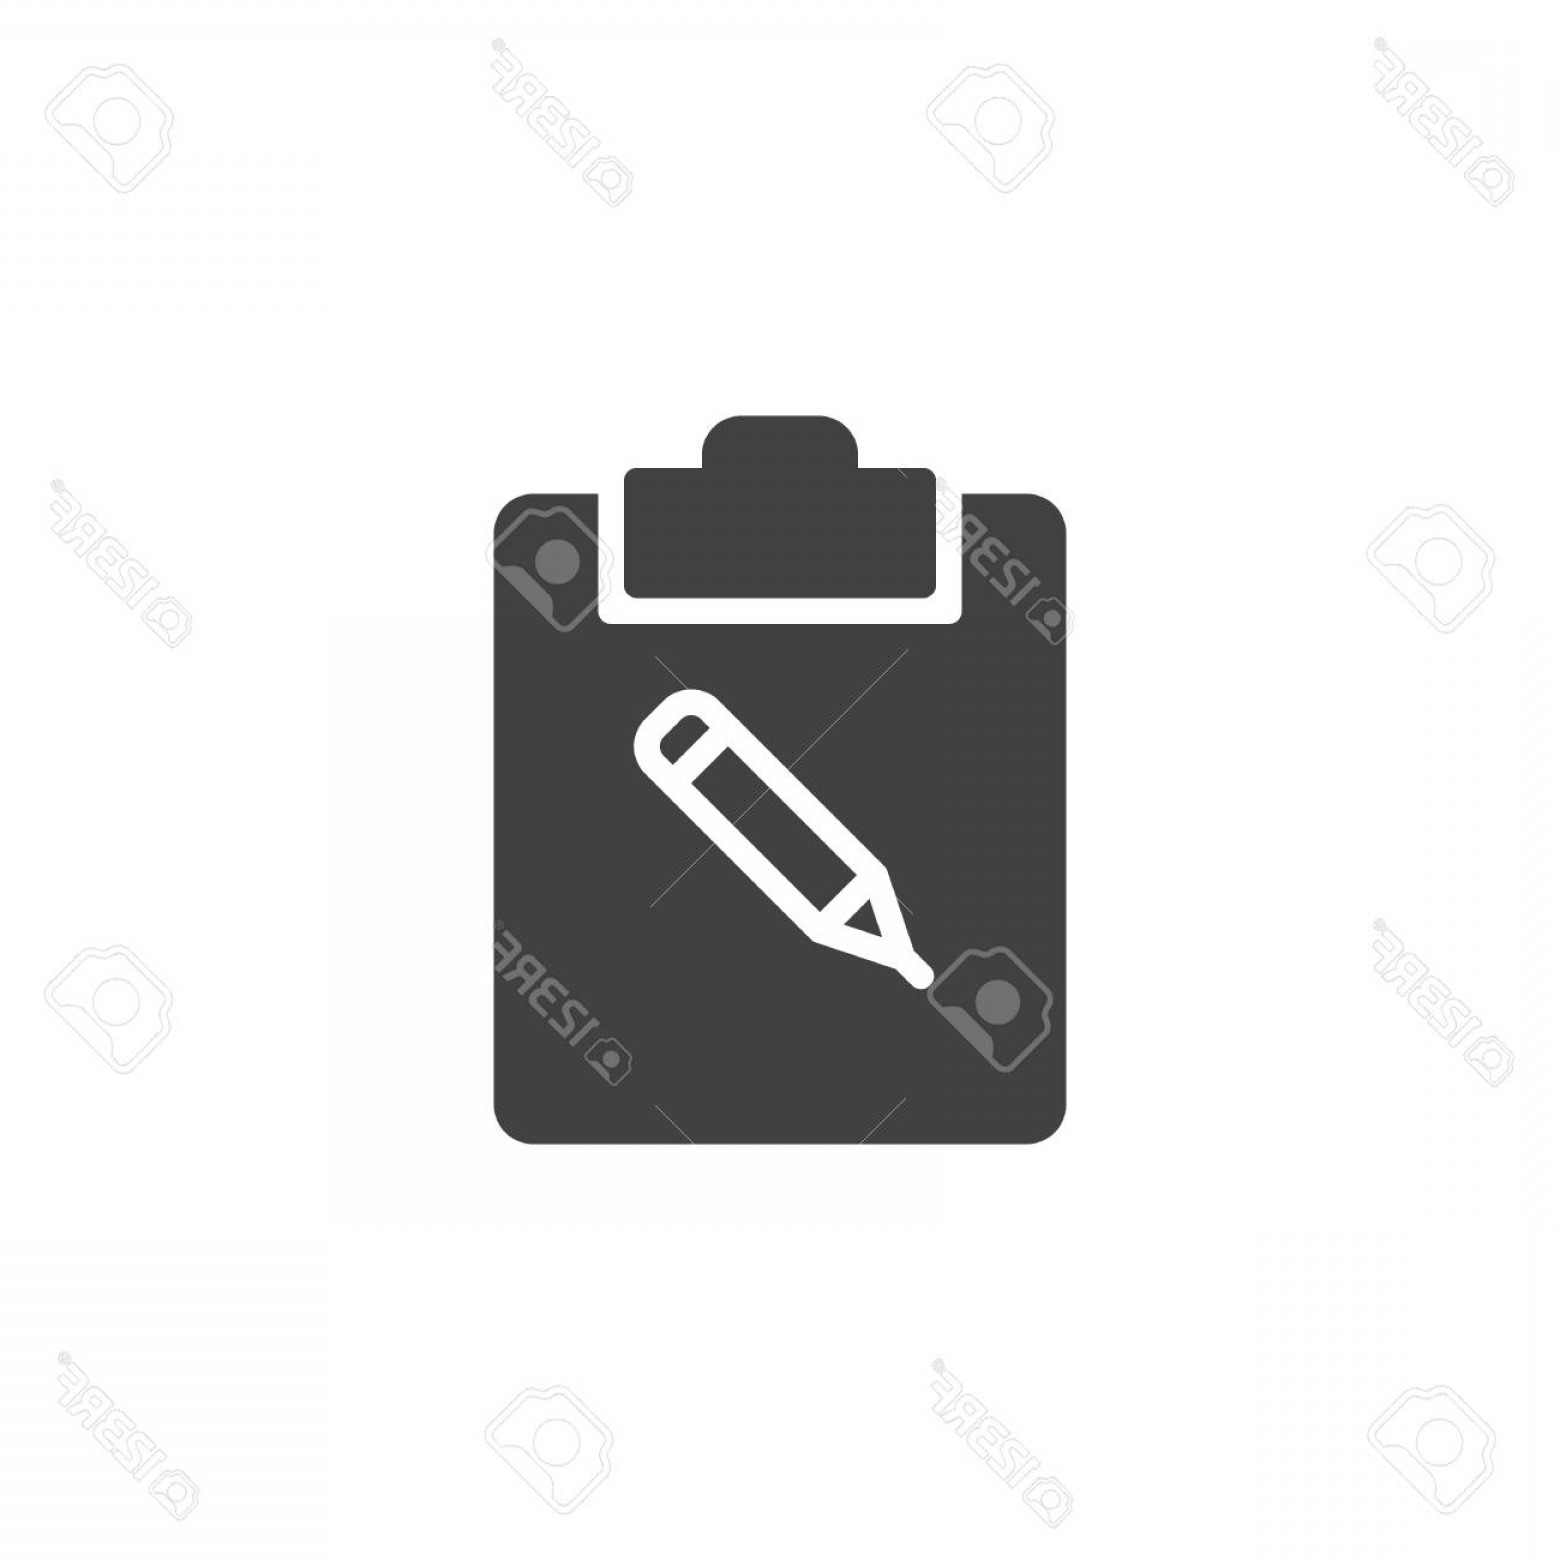 Notepad Writing Hand Vector: Photostock Vector Notepad With Pencil Icon Vector Filled Flat Sign Solid Pictogram Isolated On White Writing Pad And P